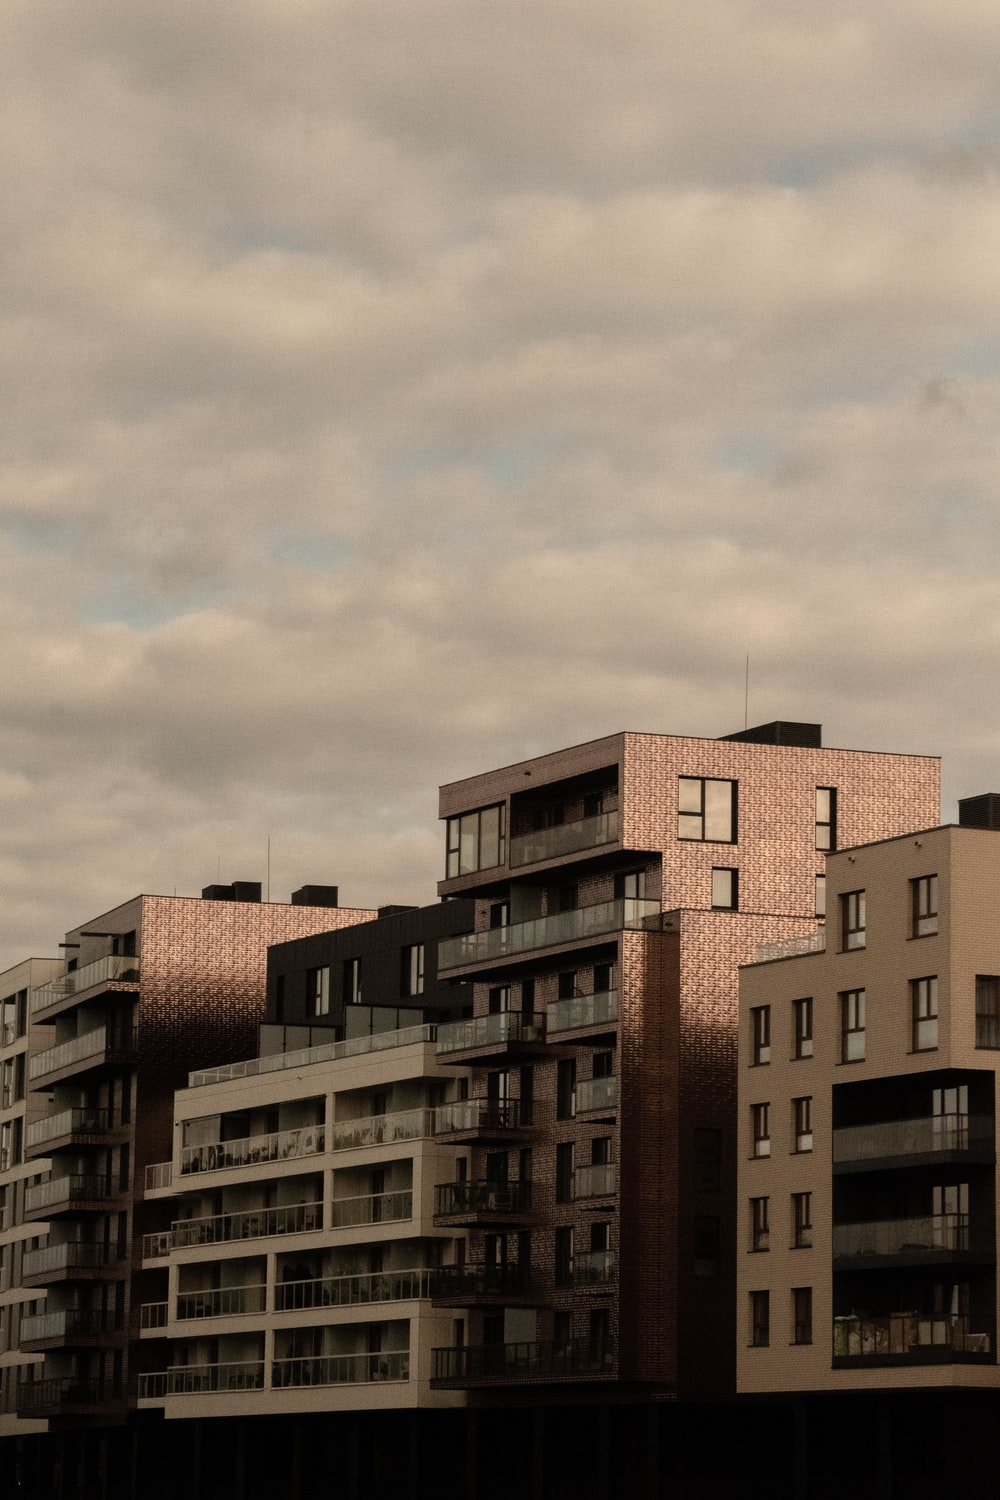 brown concrete building under cloudy sky during daytime